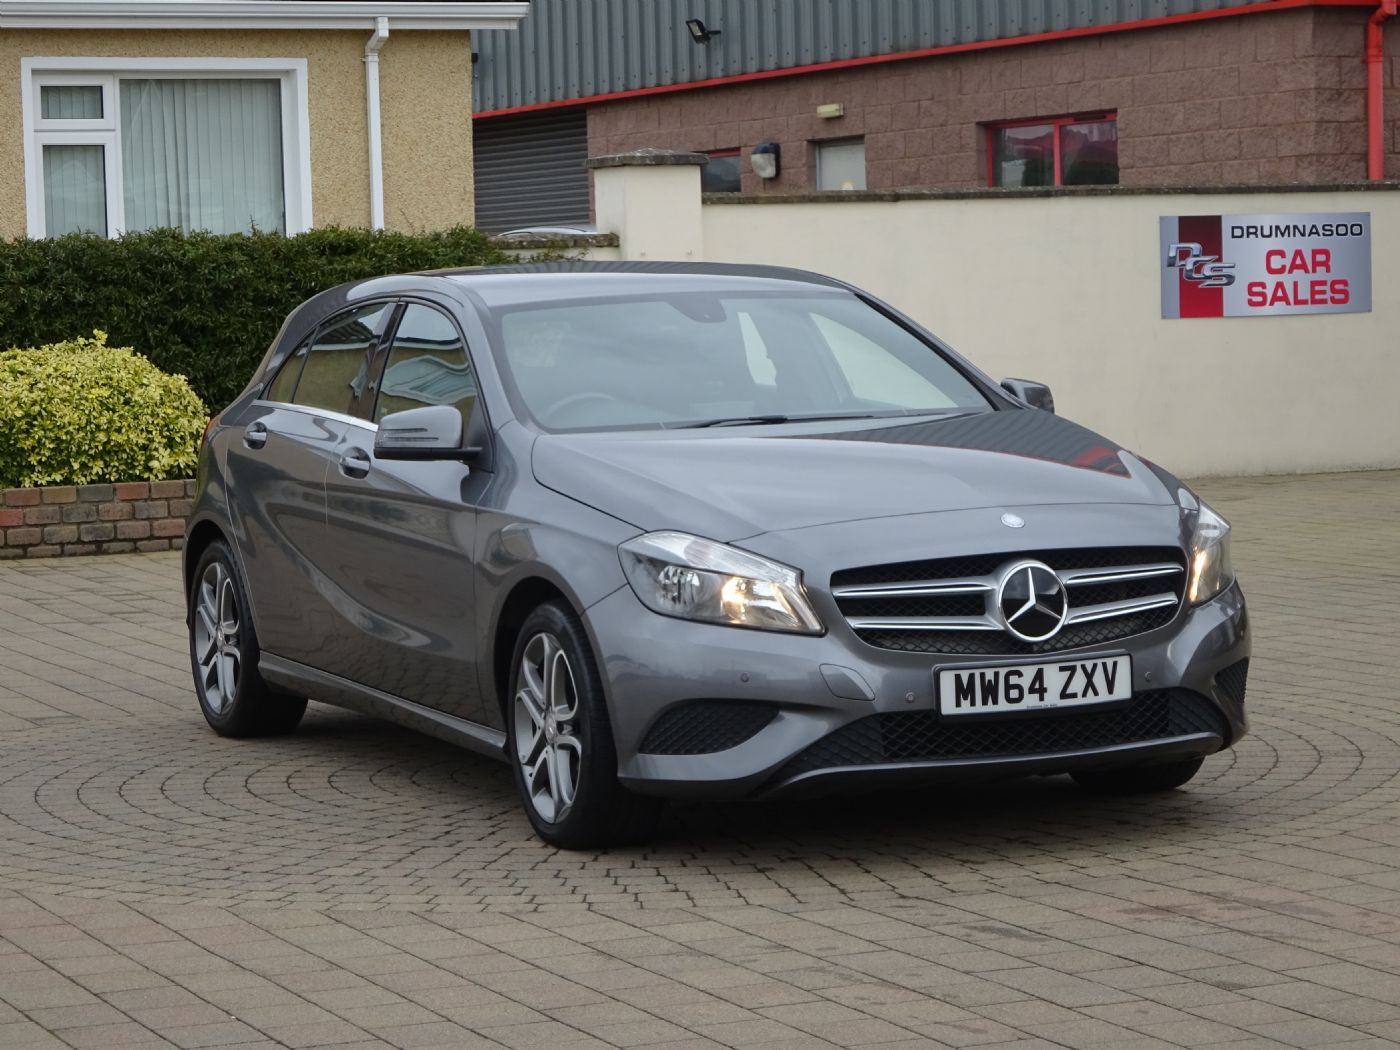 Mercedes-Benz A180 Sport 1.5 CDI Auto, £20 road tax